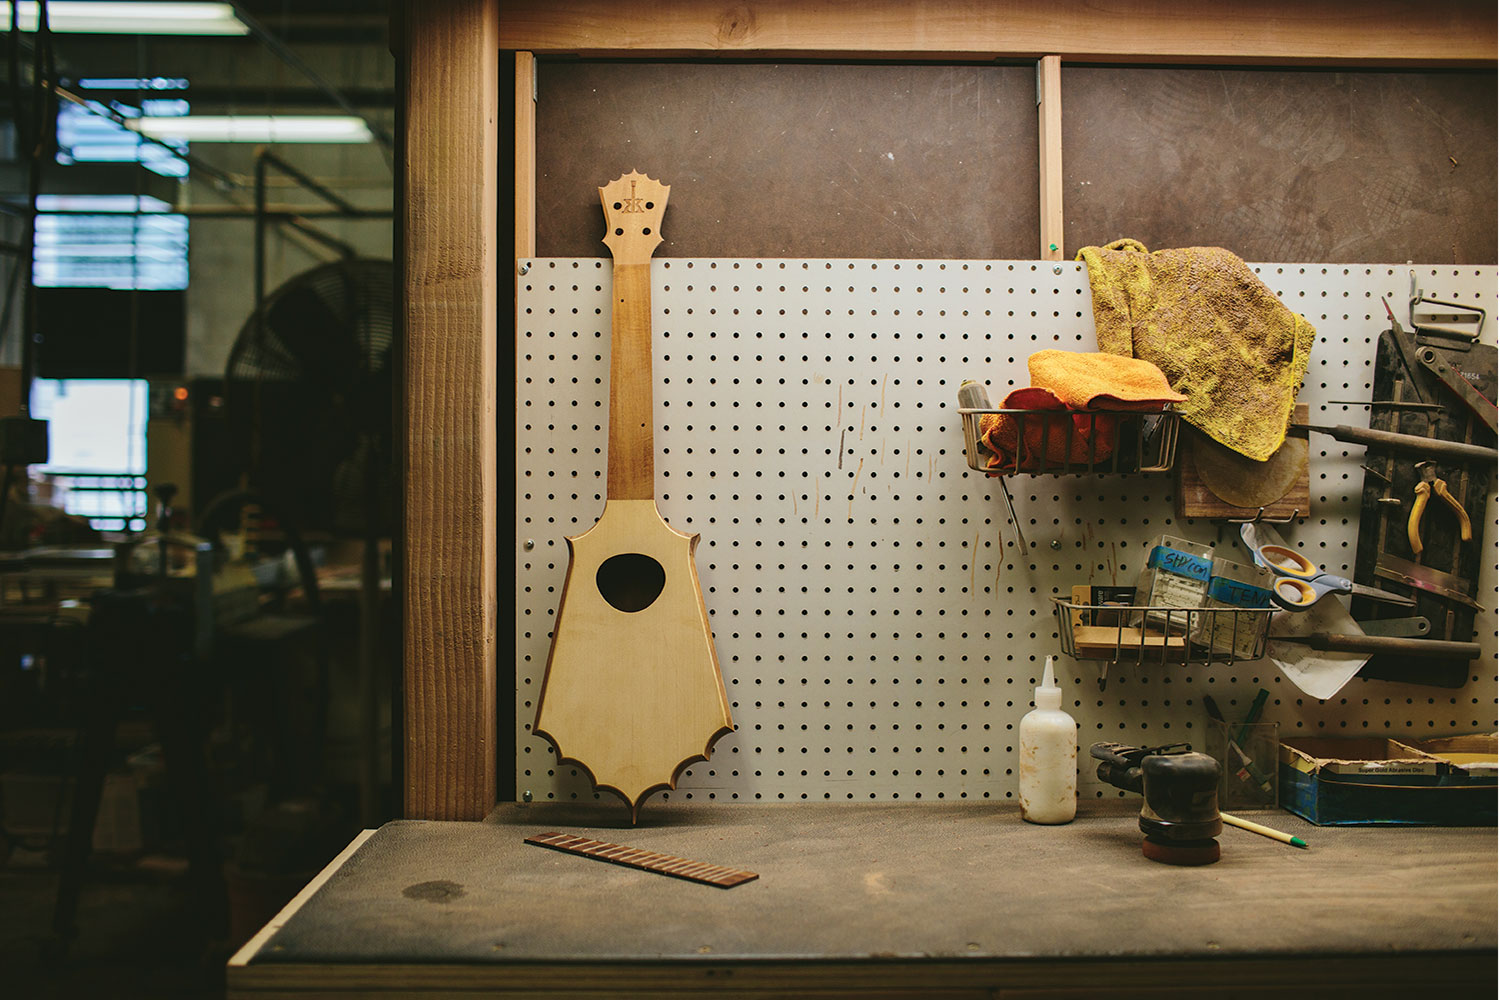 Raw ukulele in shop